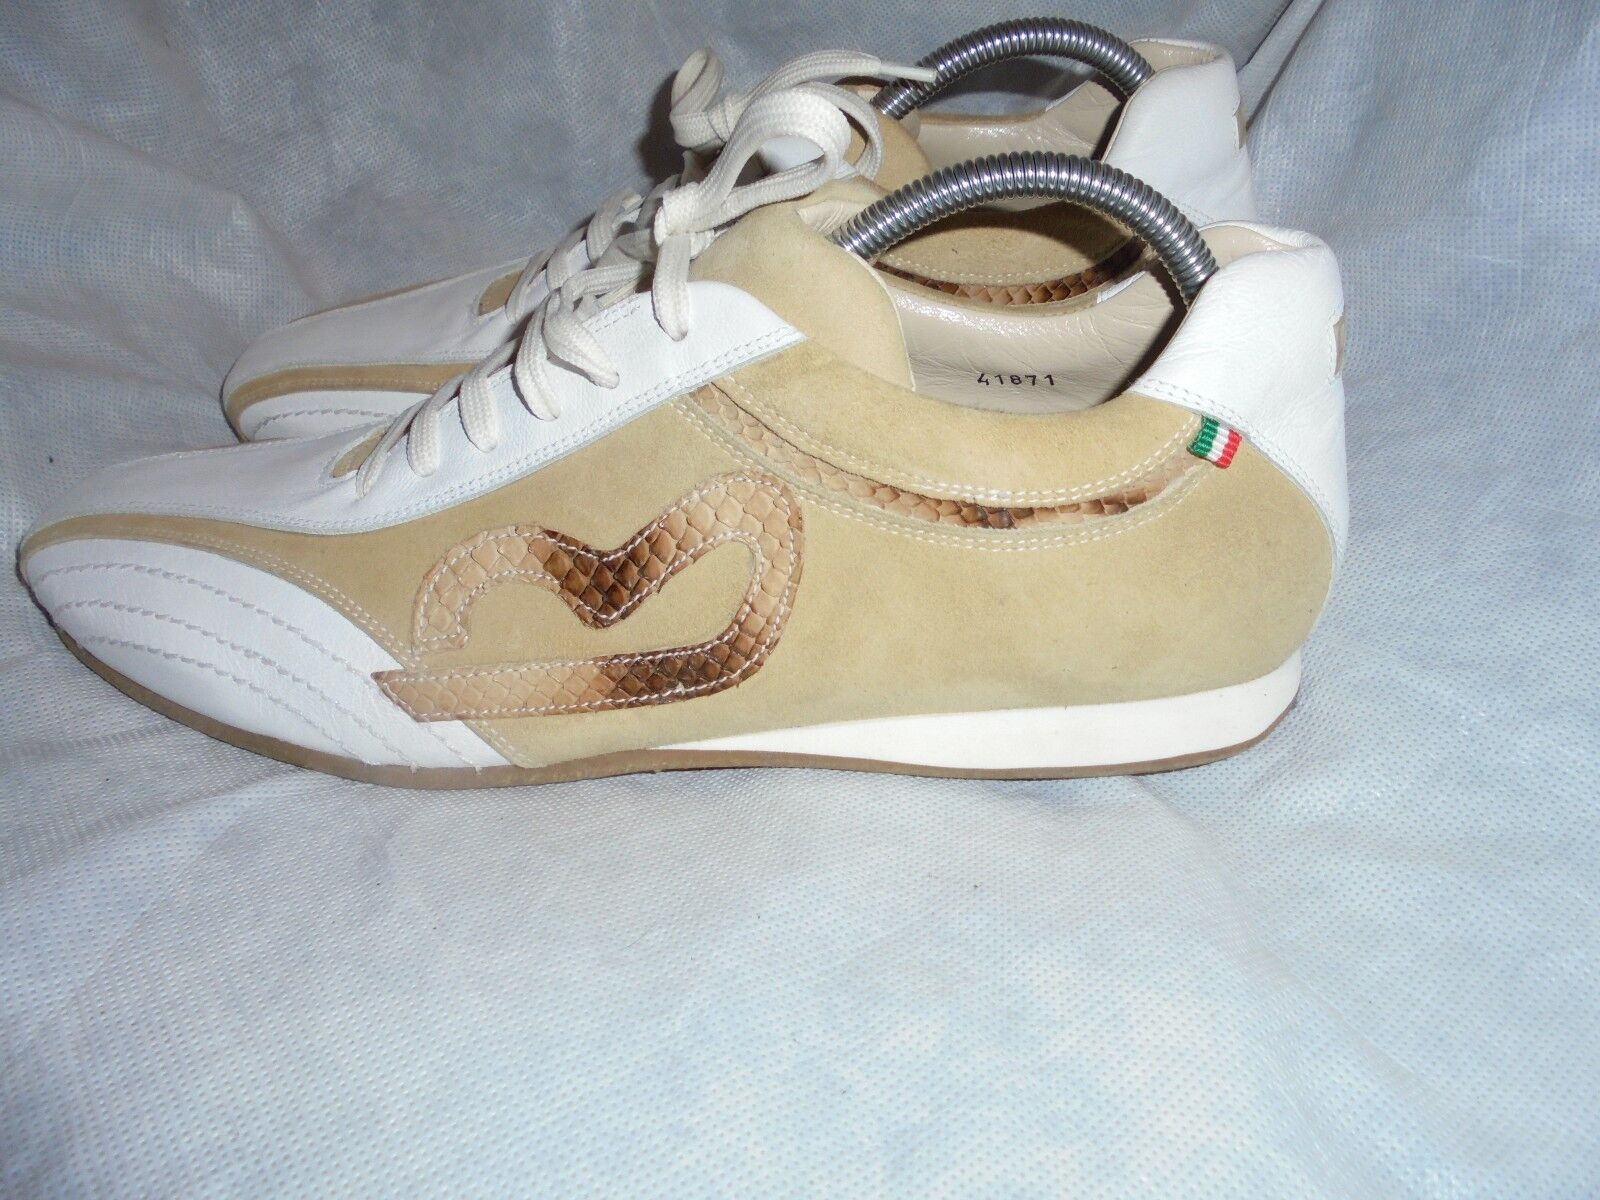 MARIO BRUNI MEN Weiß/BEIGE LEATHER LACE UP TRAINERS 43 SIZE UK 9 EU 43 TRAINERS VGC cdc954